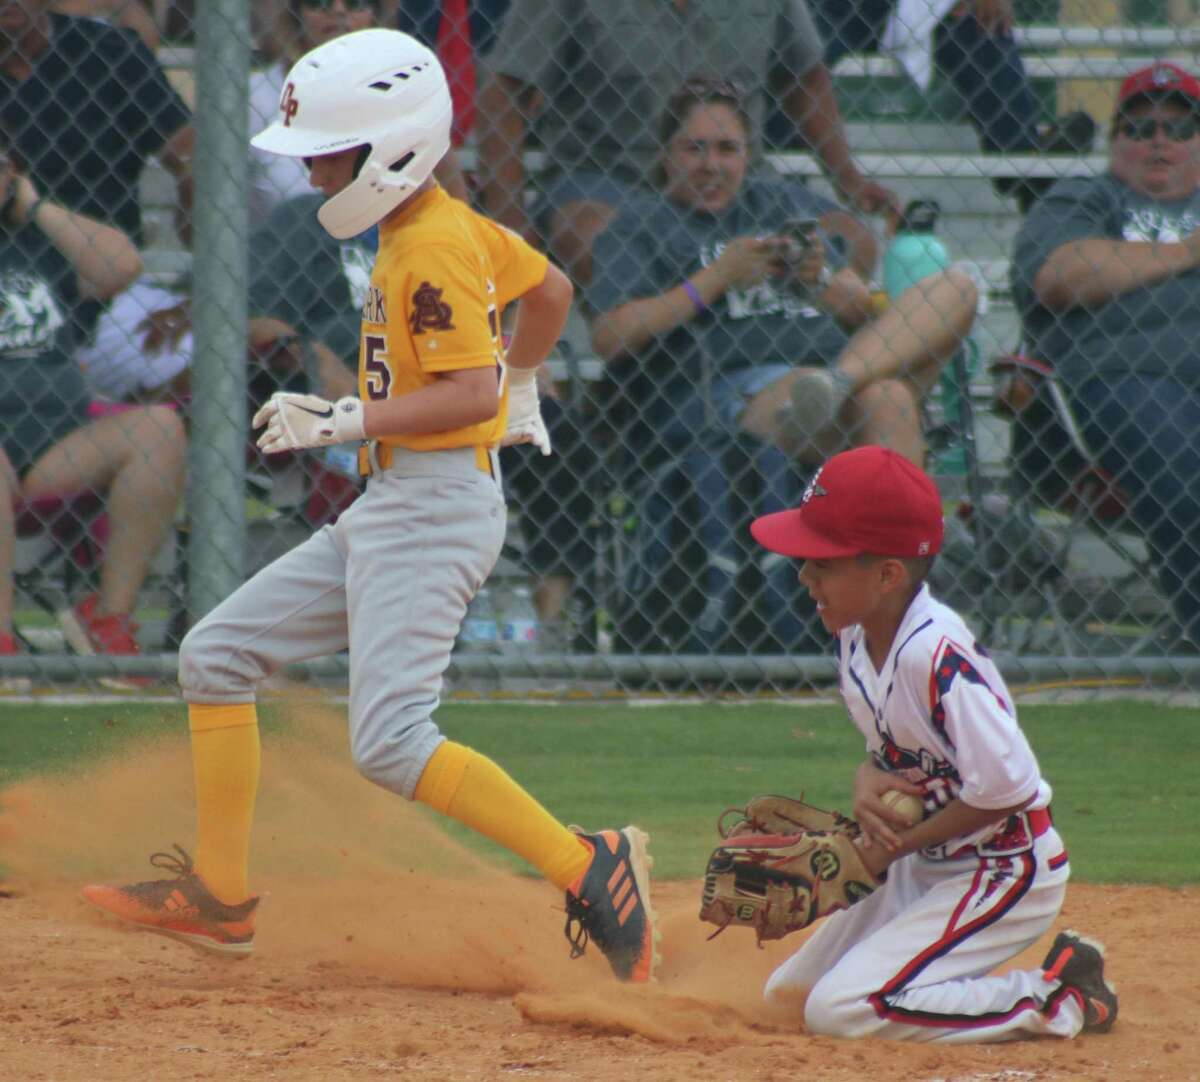 Deer Park Gold's Landin Hardin takes advantage of a wild pitch to score a run Saturday against the Mission All-Stars. The team went on to an 8-2 South Zone victory.